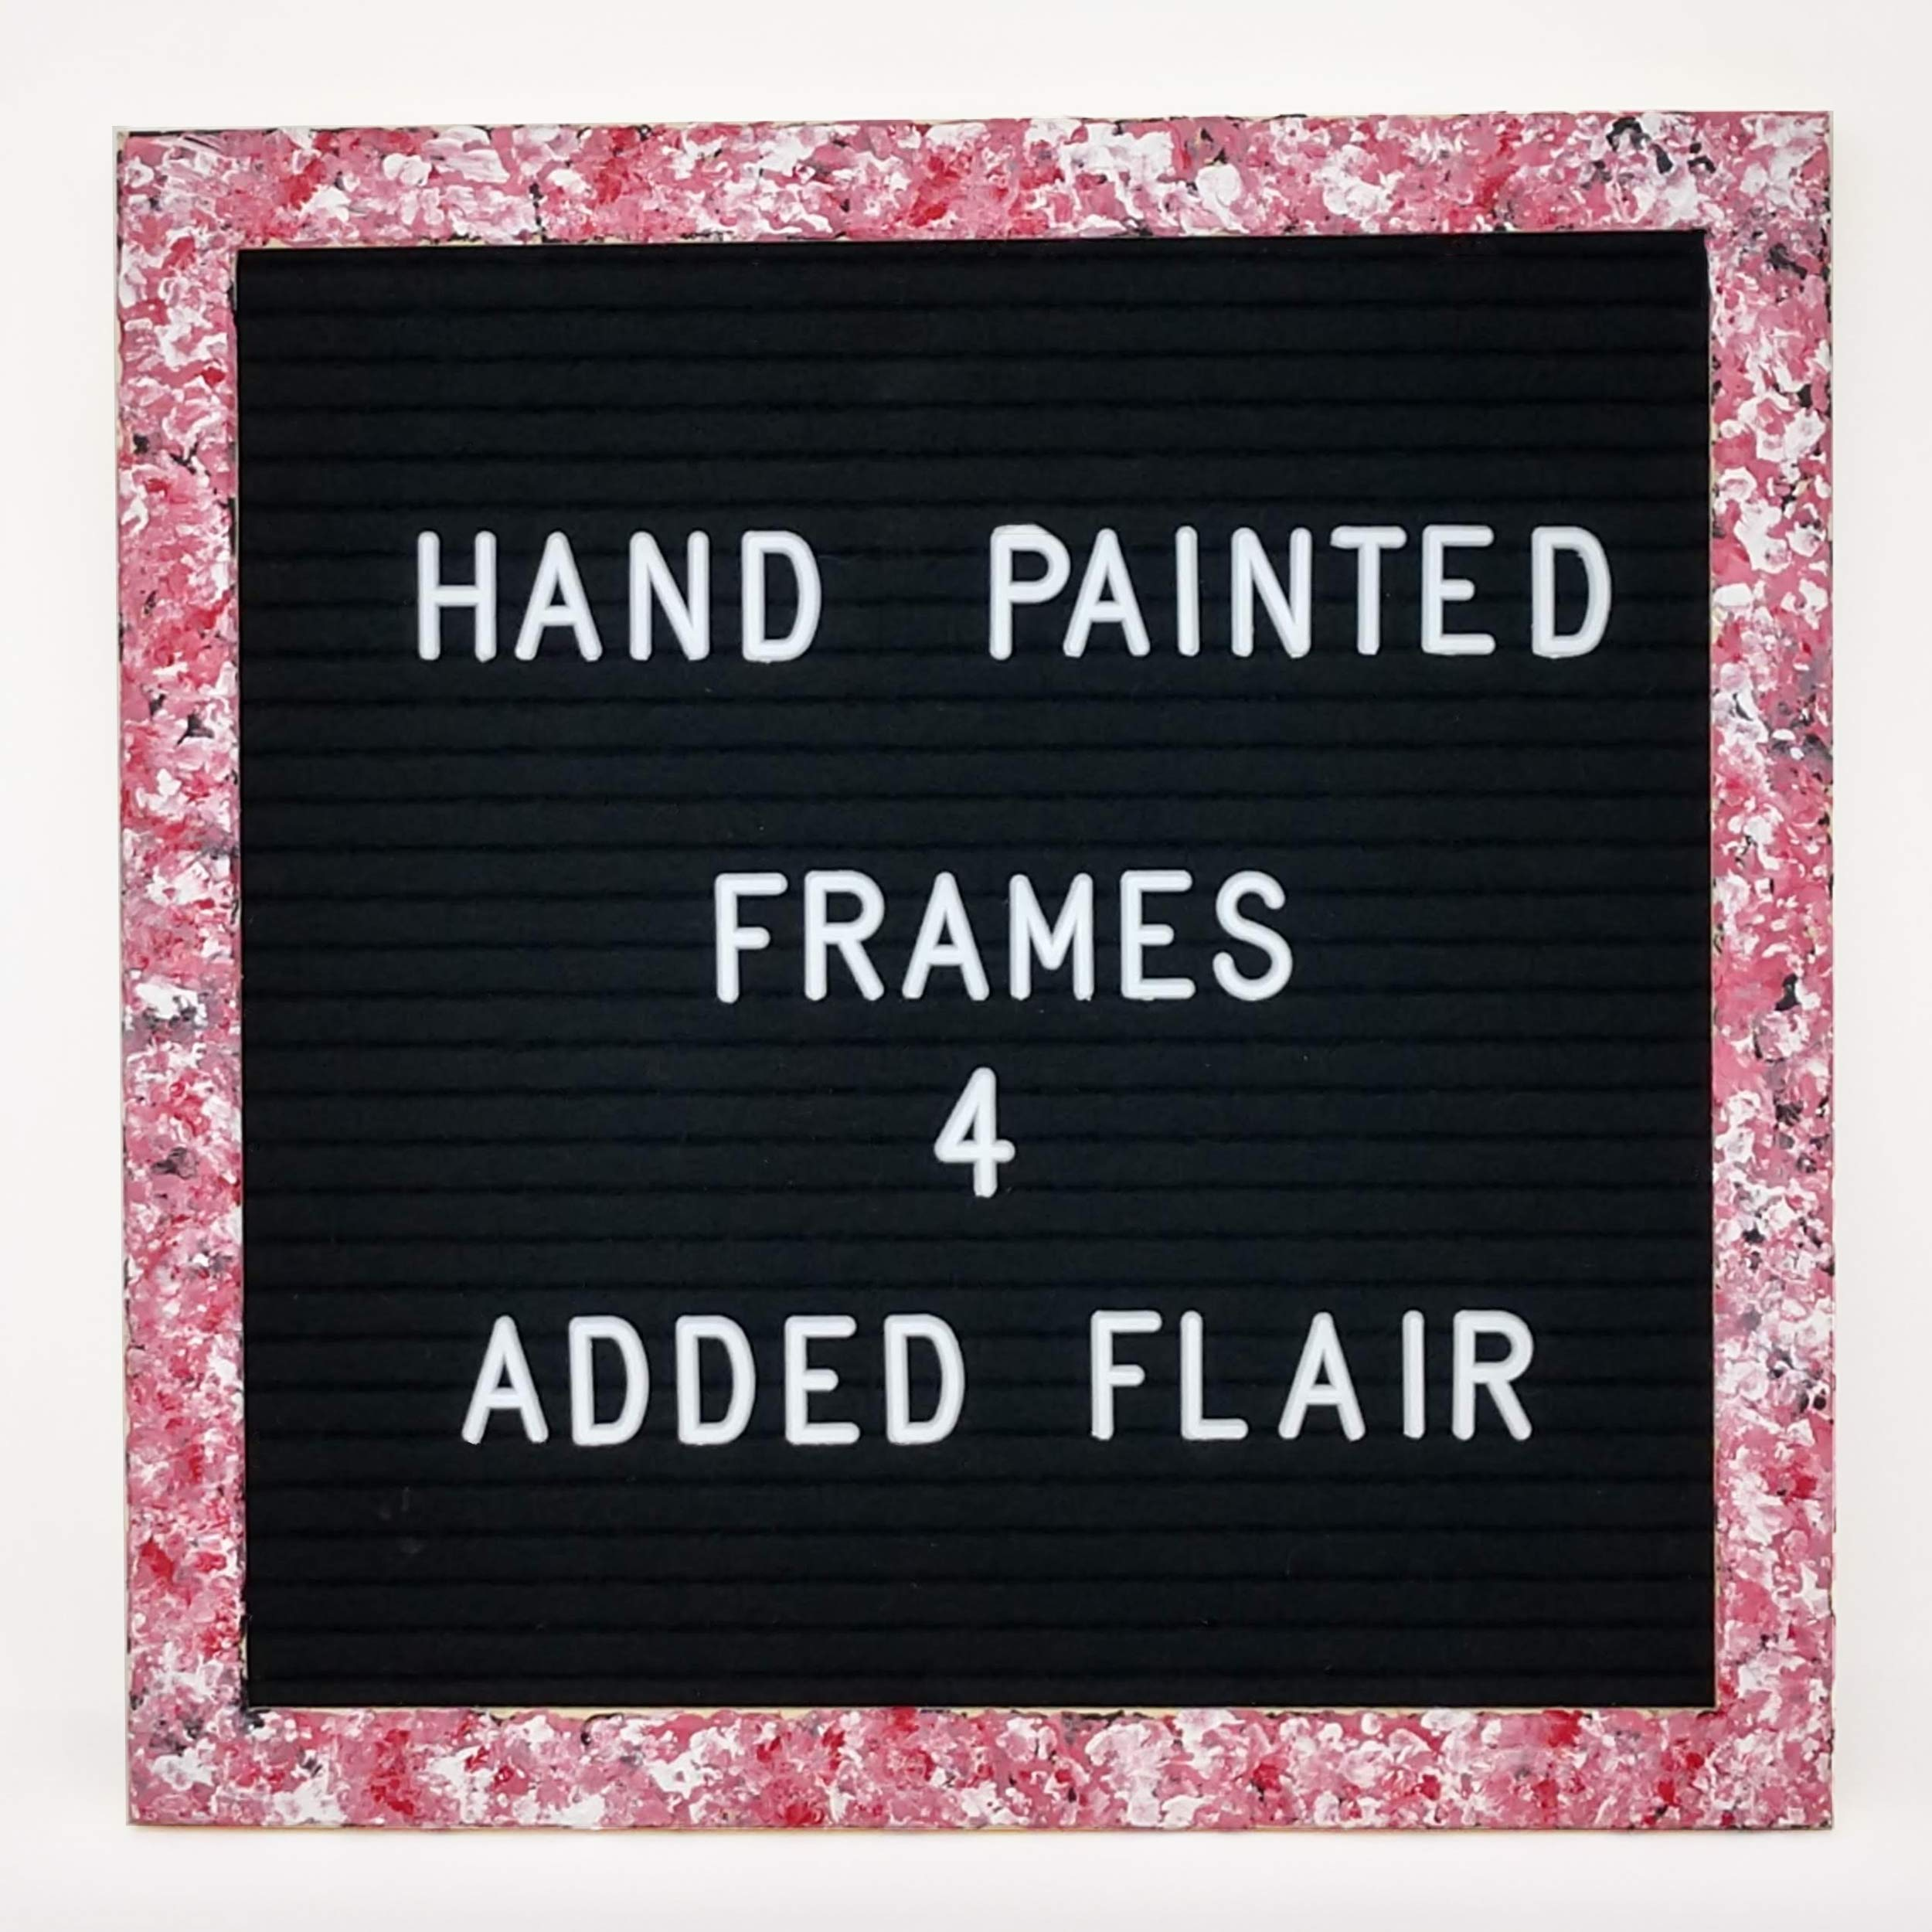 Felt Letter Board Message Board - Announcement Letterboard – 10 x 10 with Hand Painted Frame for Max Impact-Changeable Letter Word Board with Letters Baby Announcement Board (Pink)